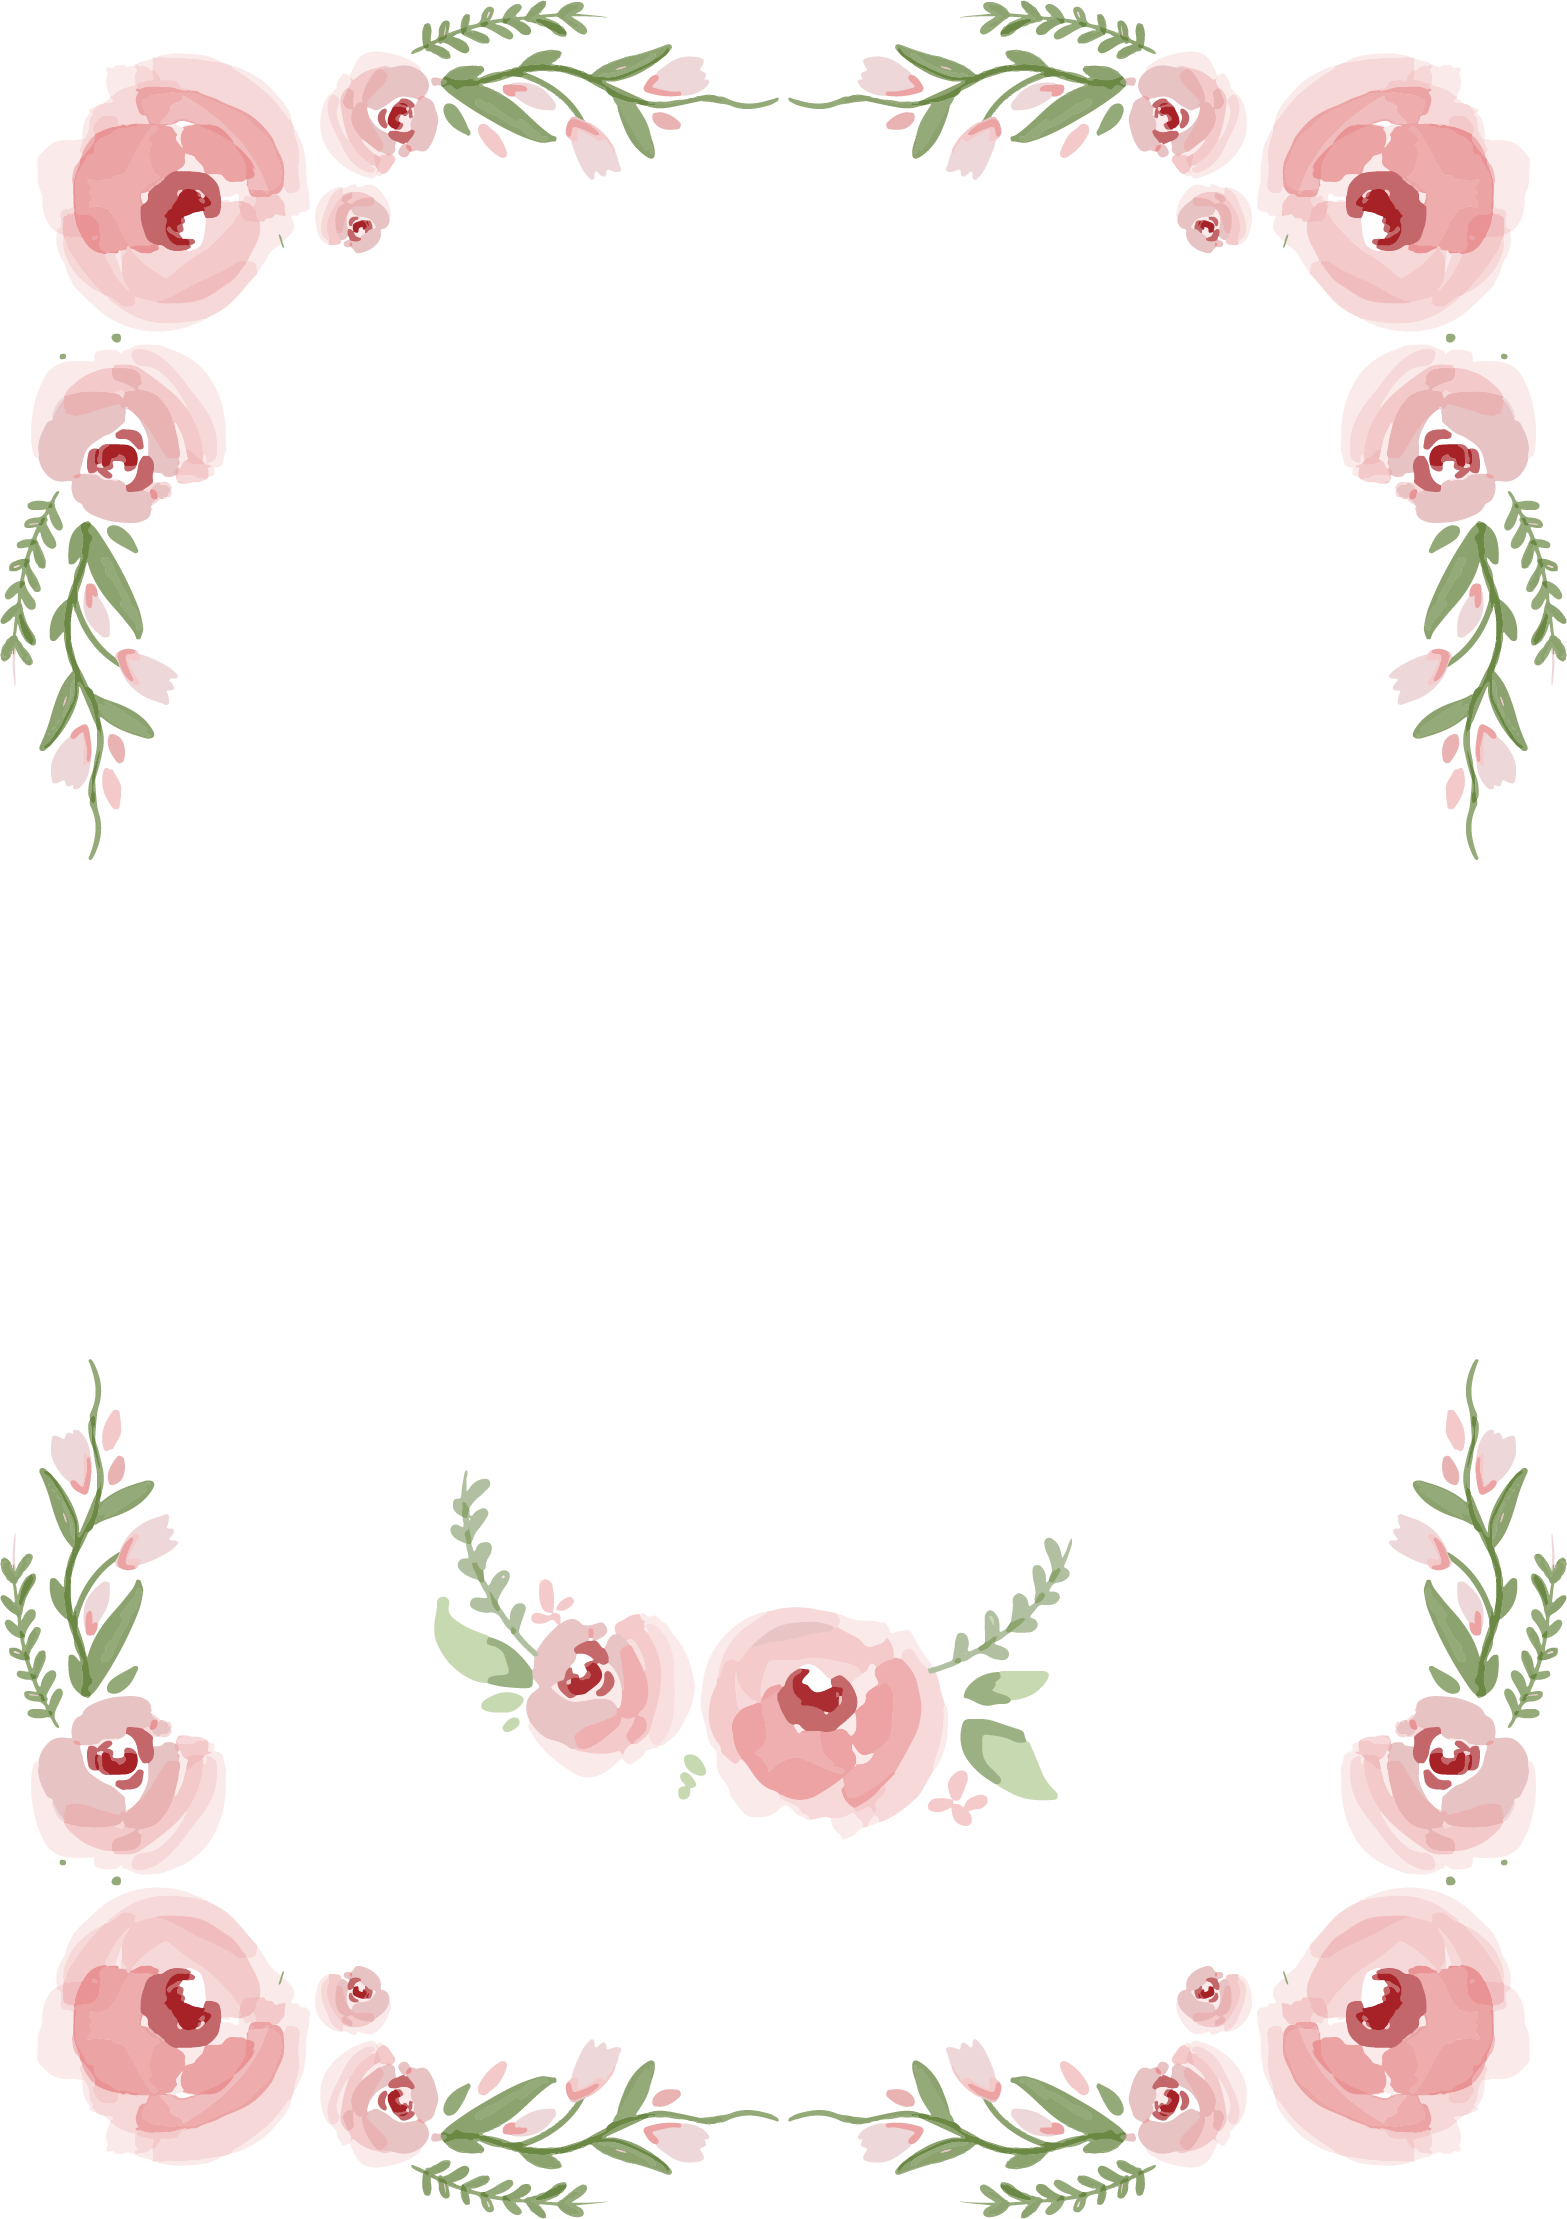 Transparent wedding hand clipart - And Painted Rose Wedding Hand Roses Invitation Clipart - Wedding Flowers Png Border